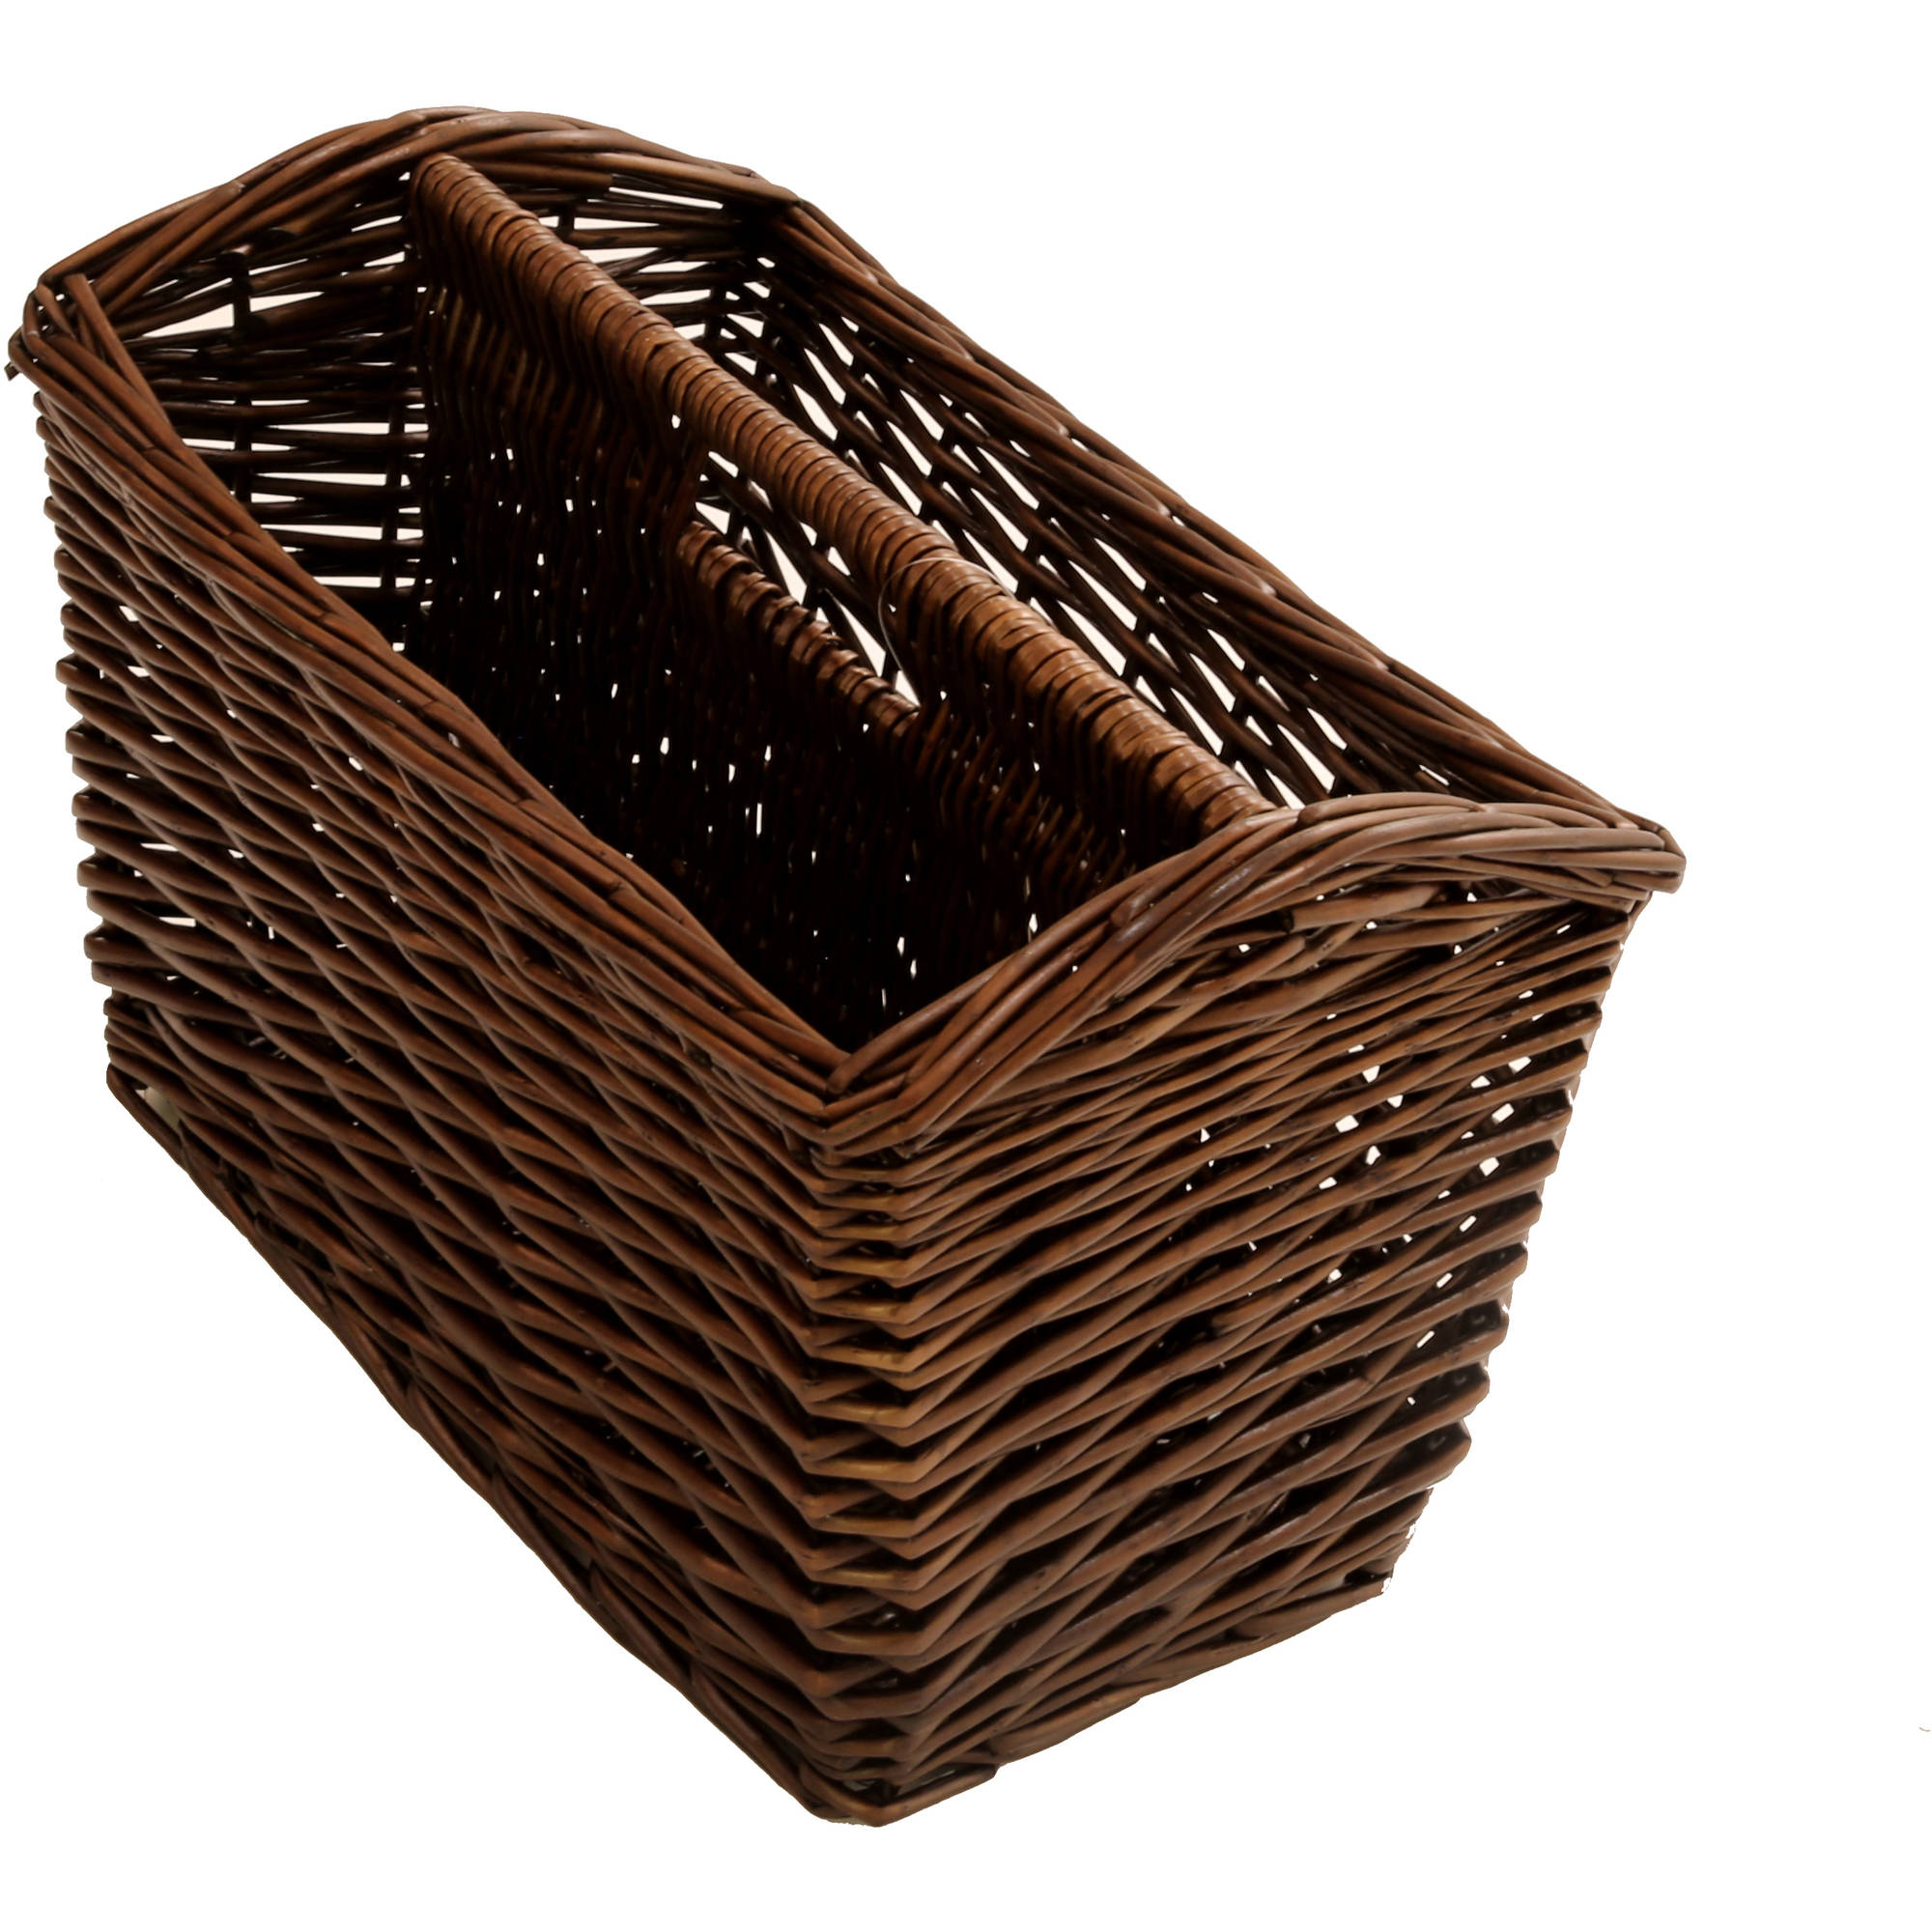 Better Homes and Gardens Willow Magazine Storage Basket